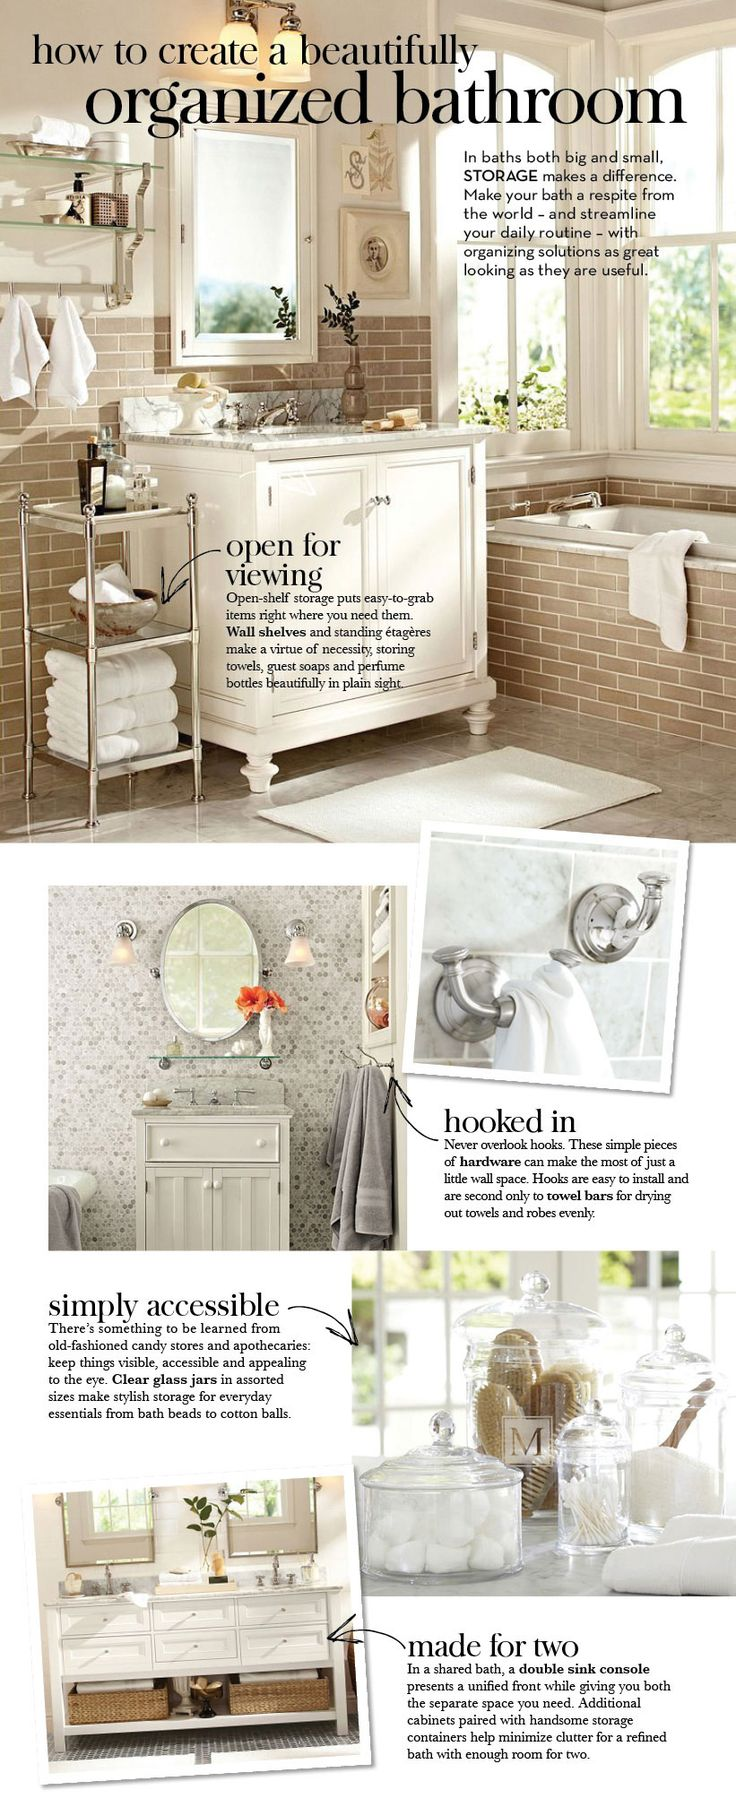 78+ images about home • wash on pinterest | pottery barn bathroom